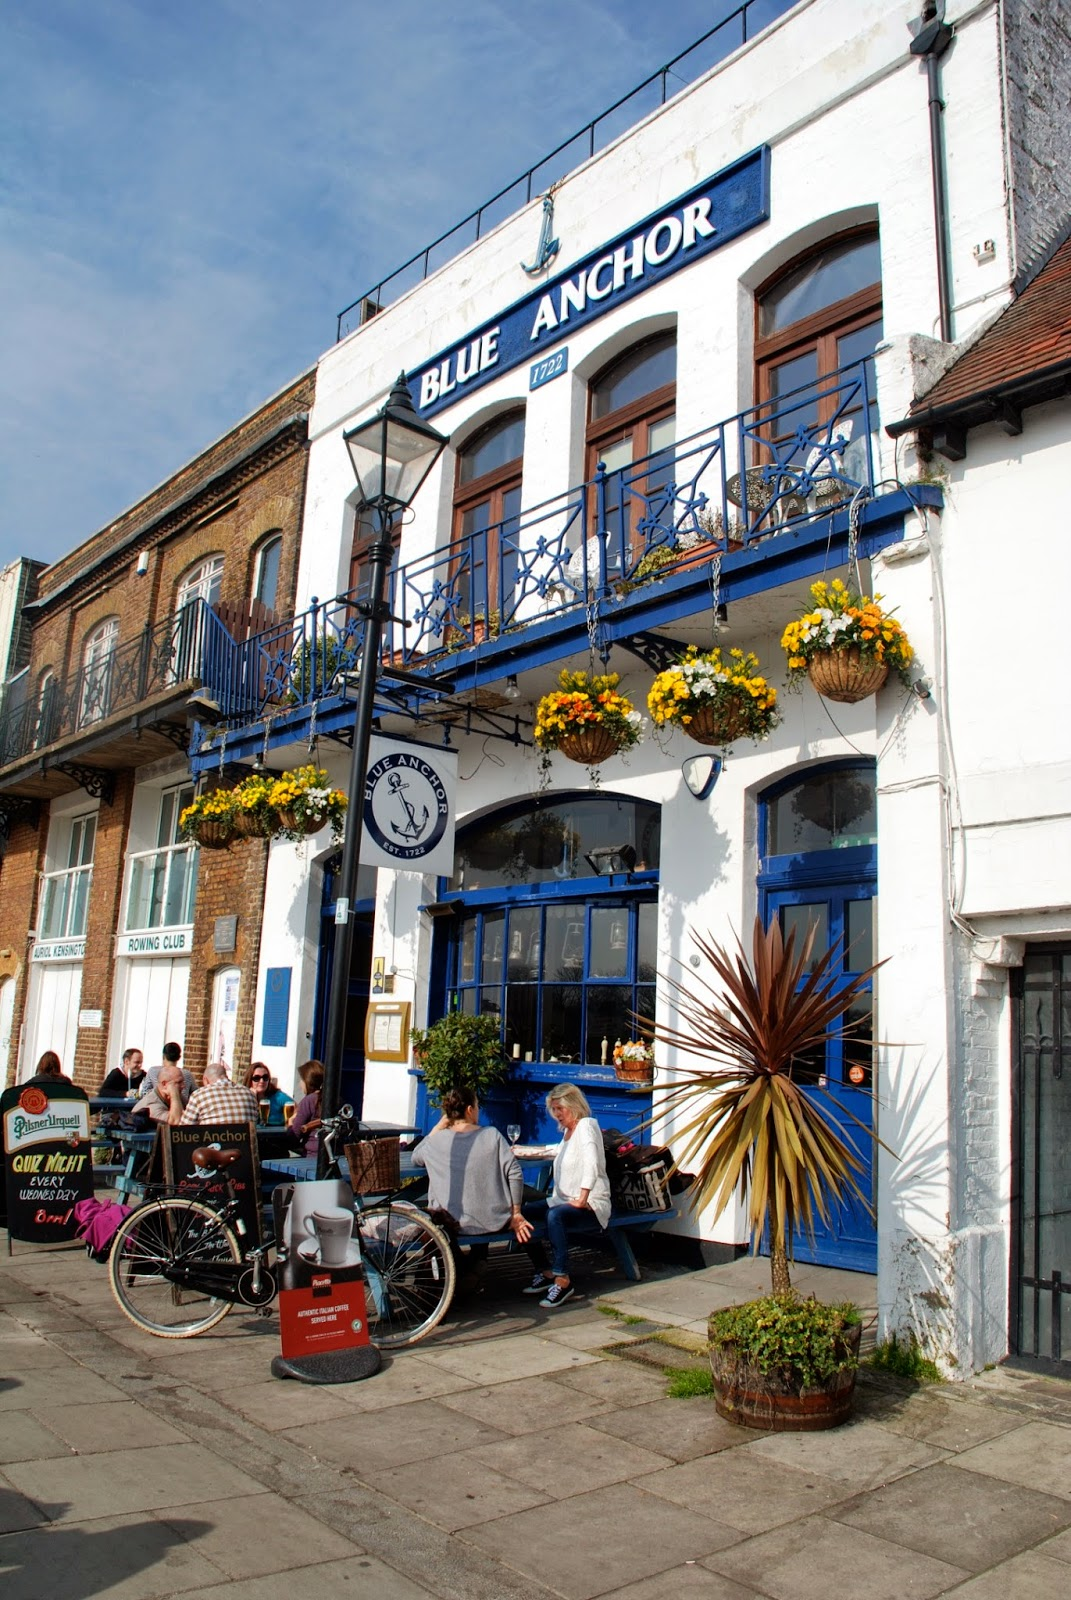 Blue Anchor, Hammersmith, London